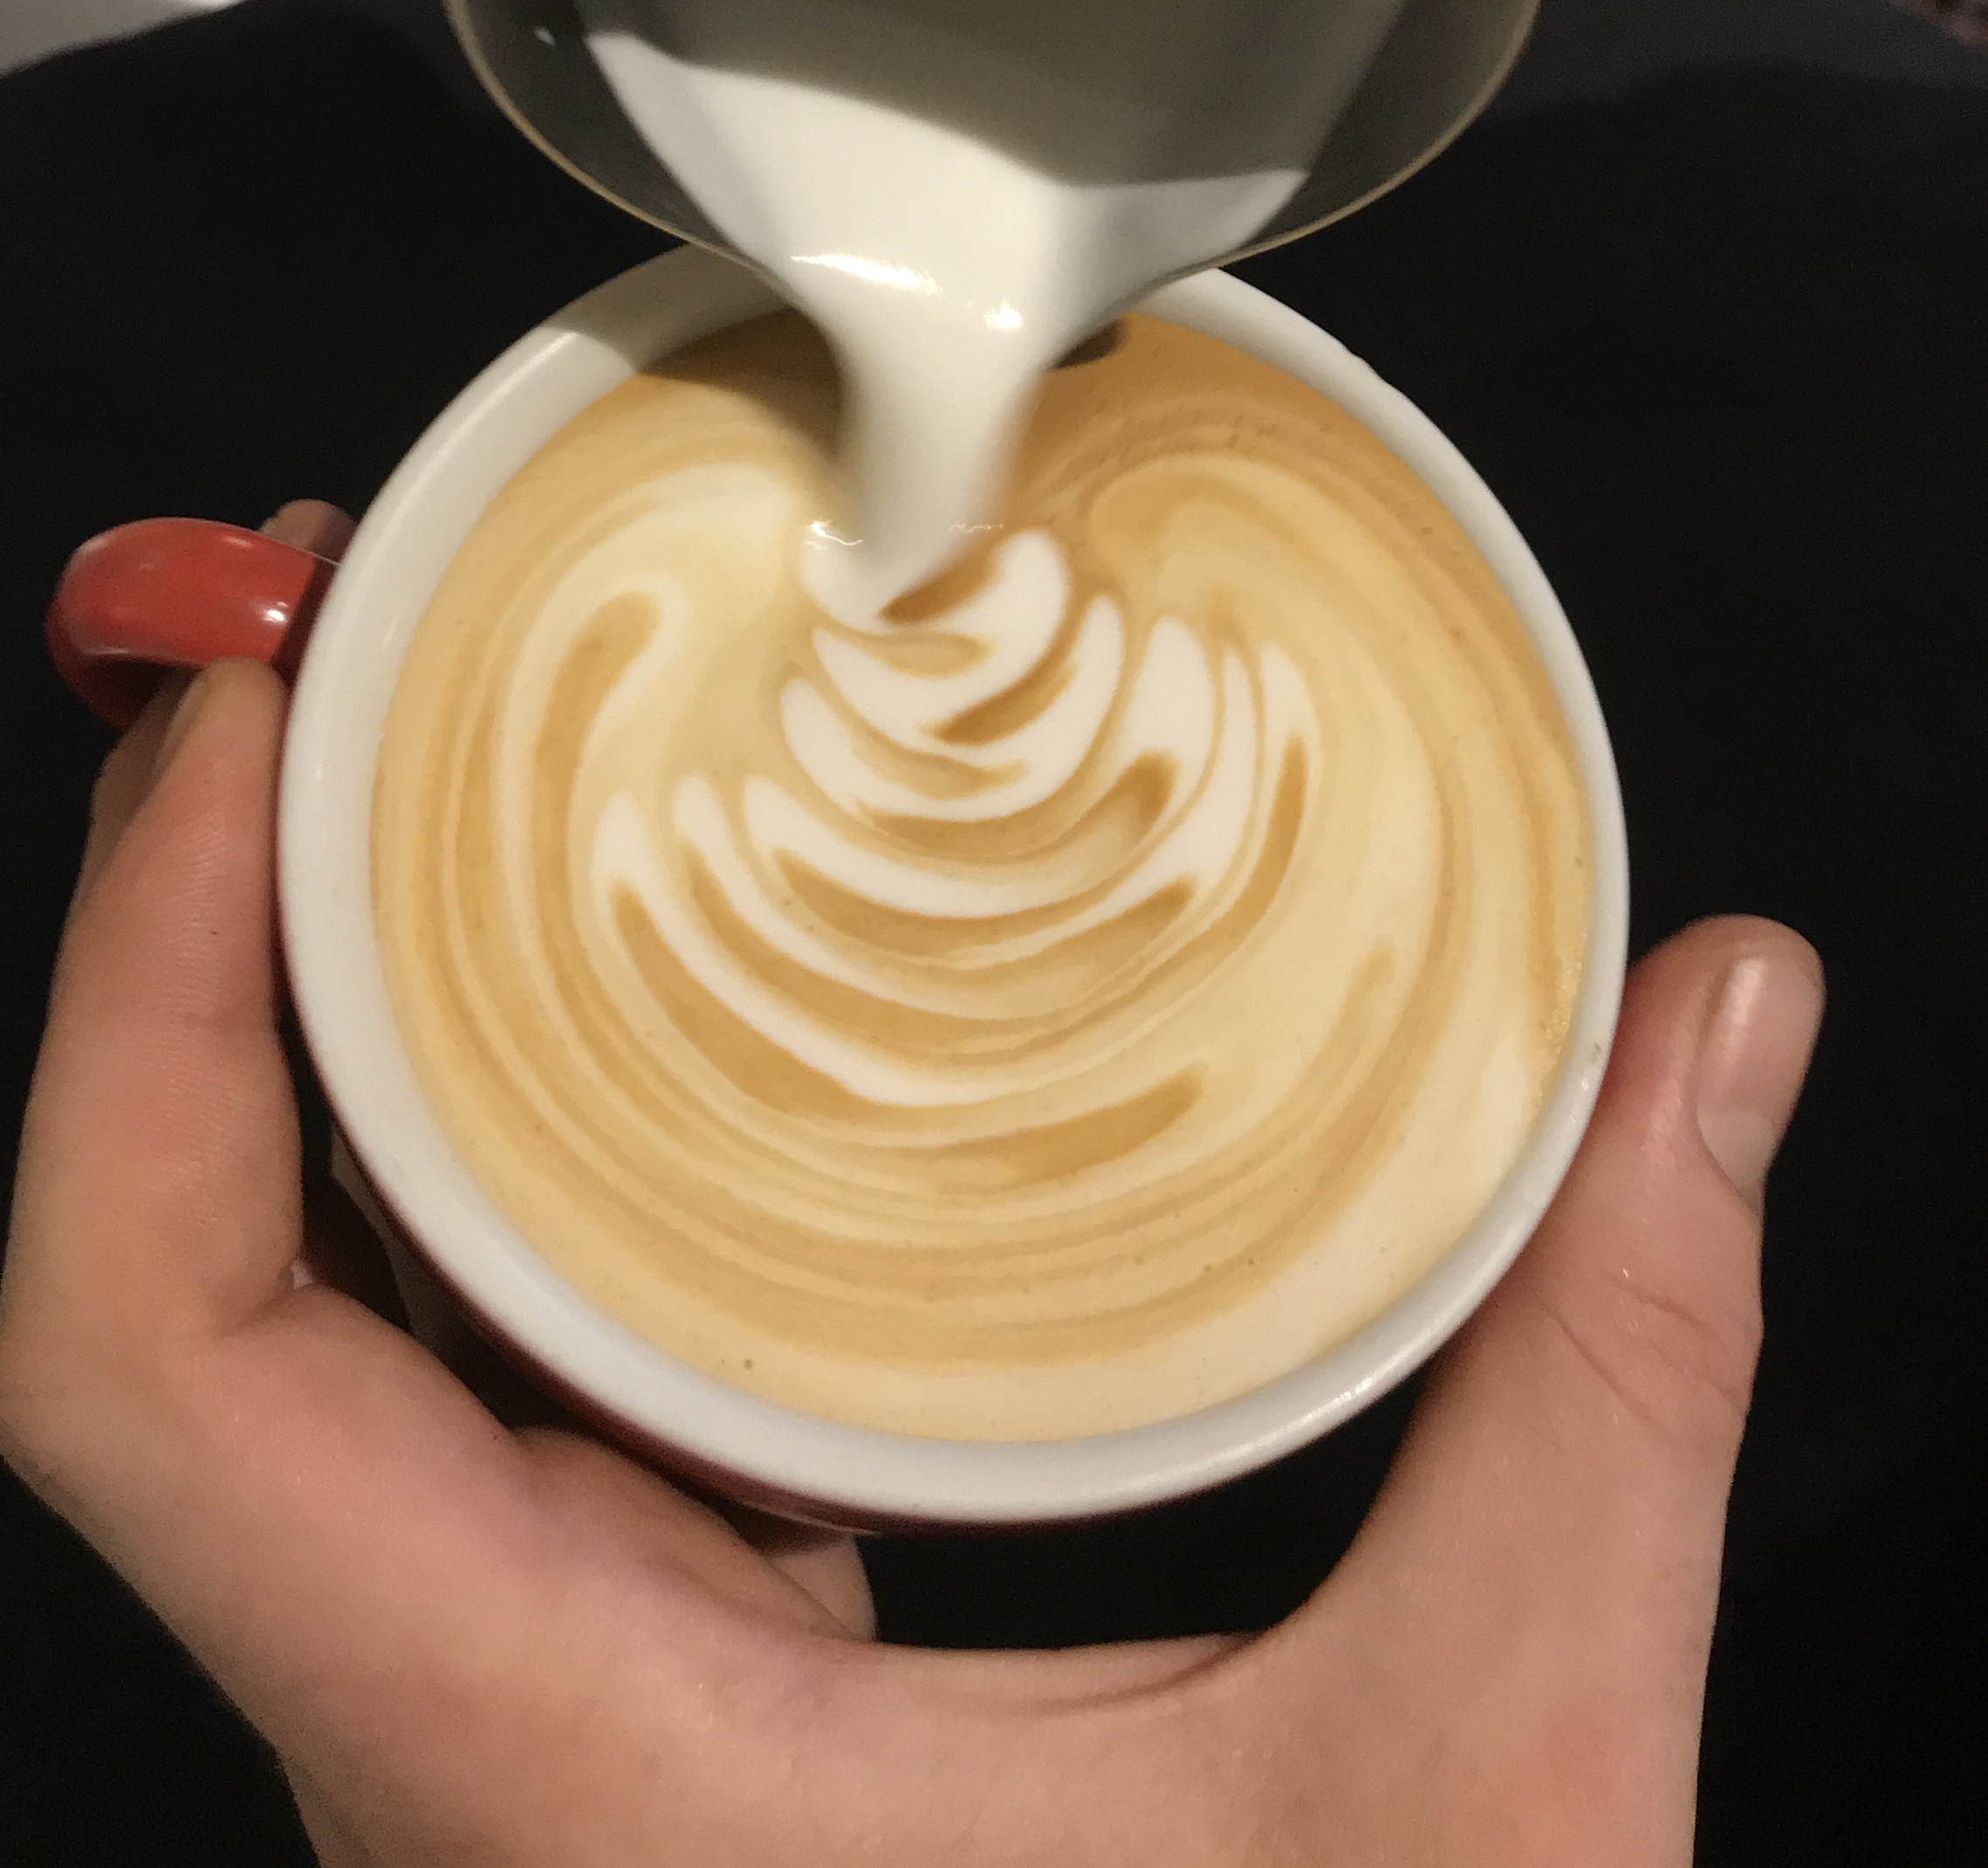 hand crafted espresso drinks at Coffeetopia